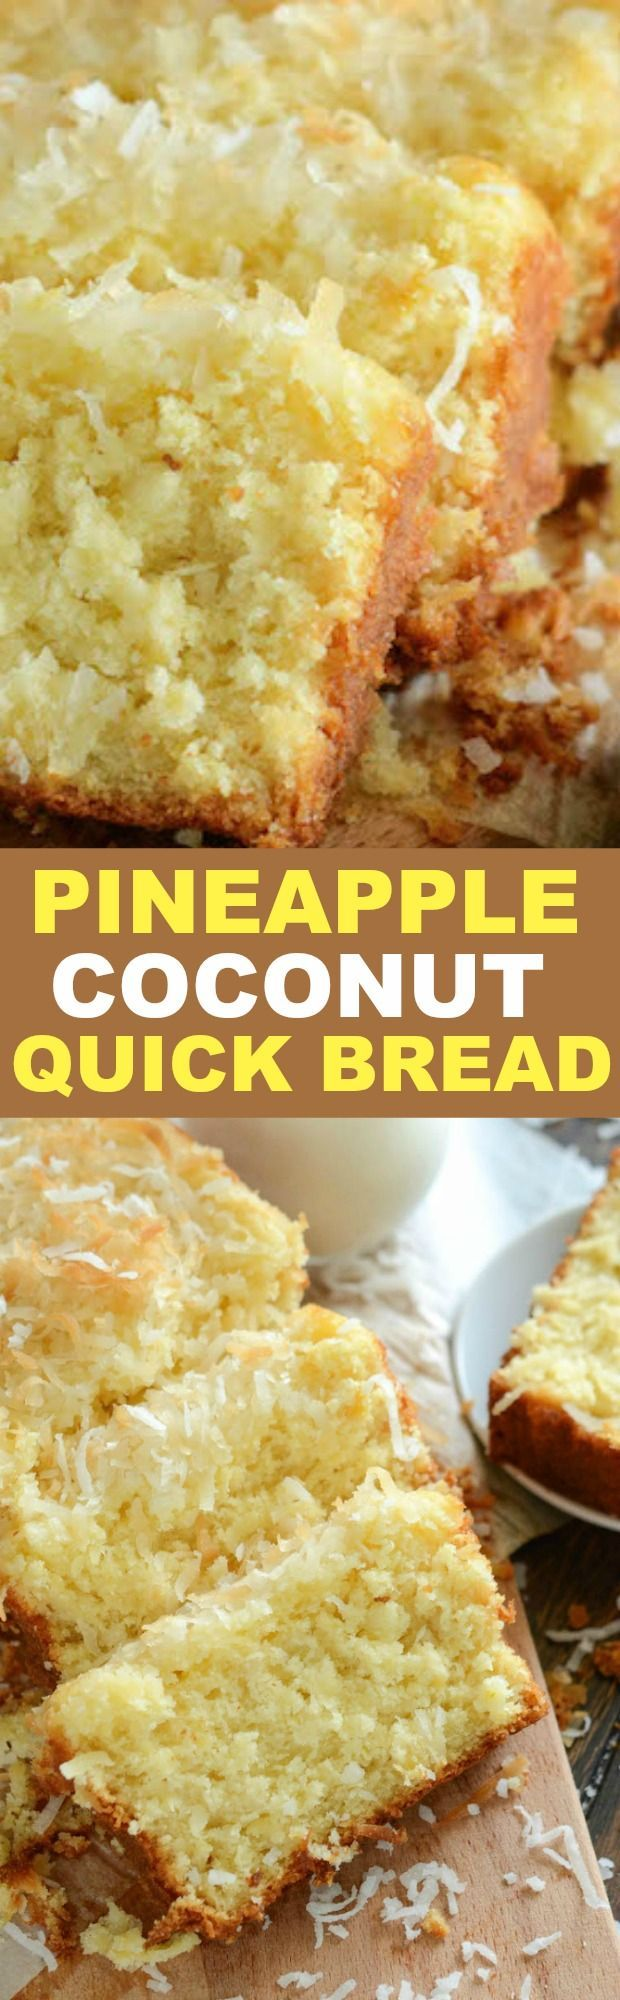 Pineapple Coconut Quick Bread: this sweet tropical quick bread is full of flaky coconut, bites of pineapple, and it can be served for breakfast or dessert!